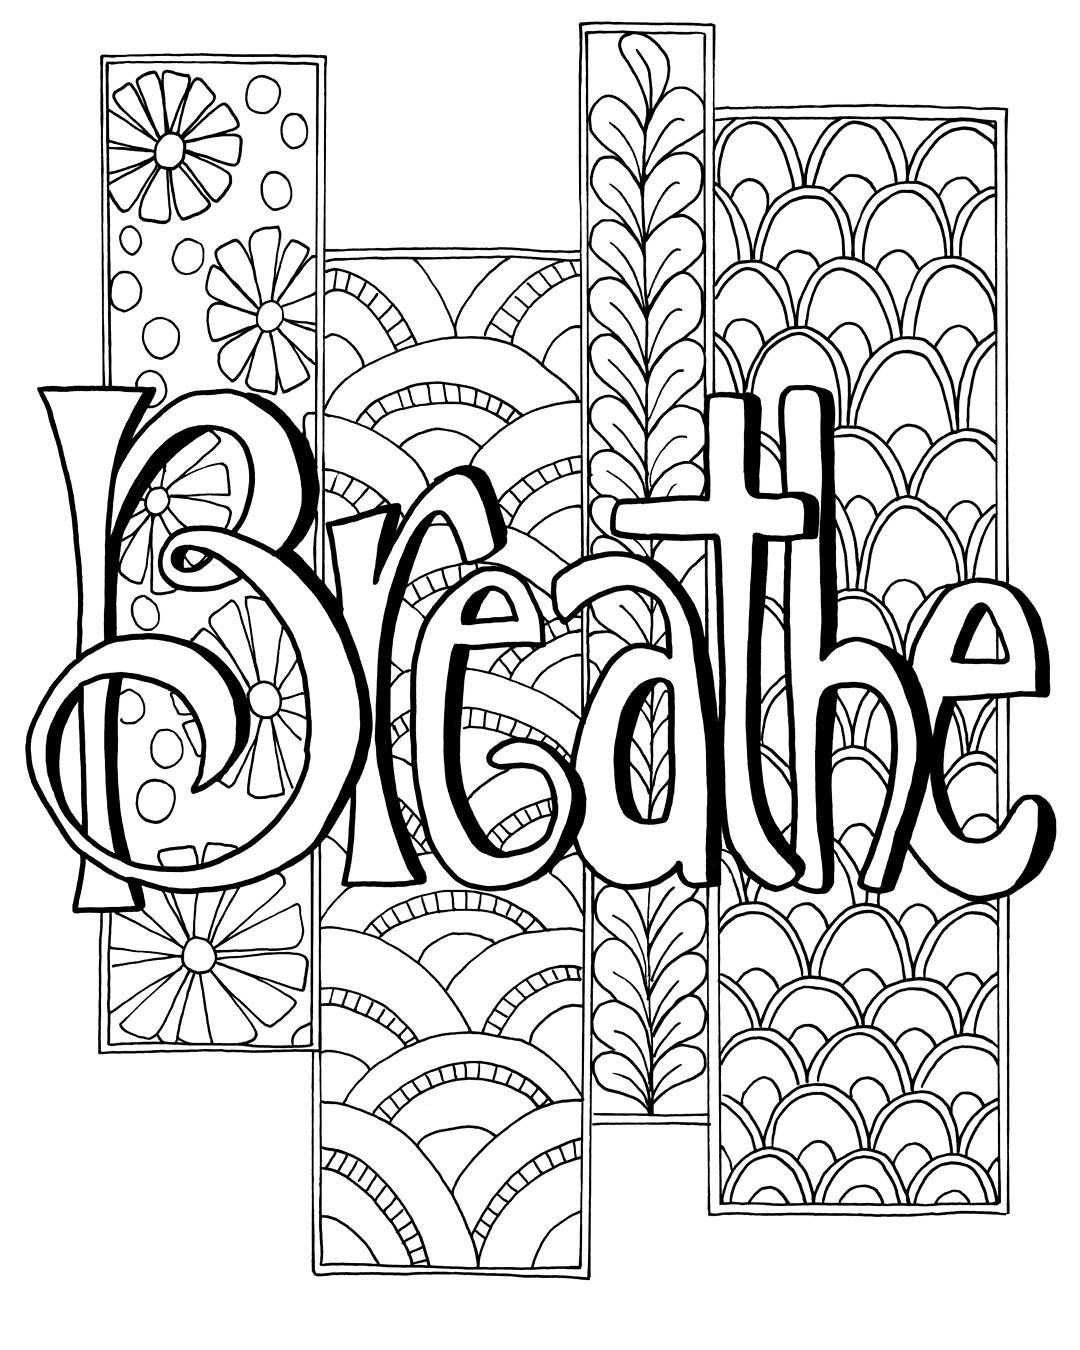 Breathe Coloring Page Words Judyclement With Images Coloring